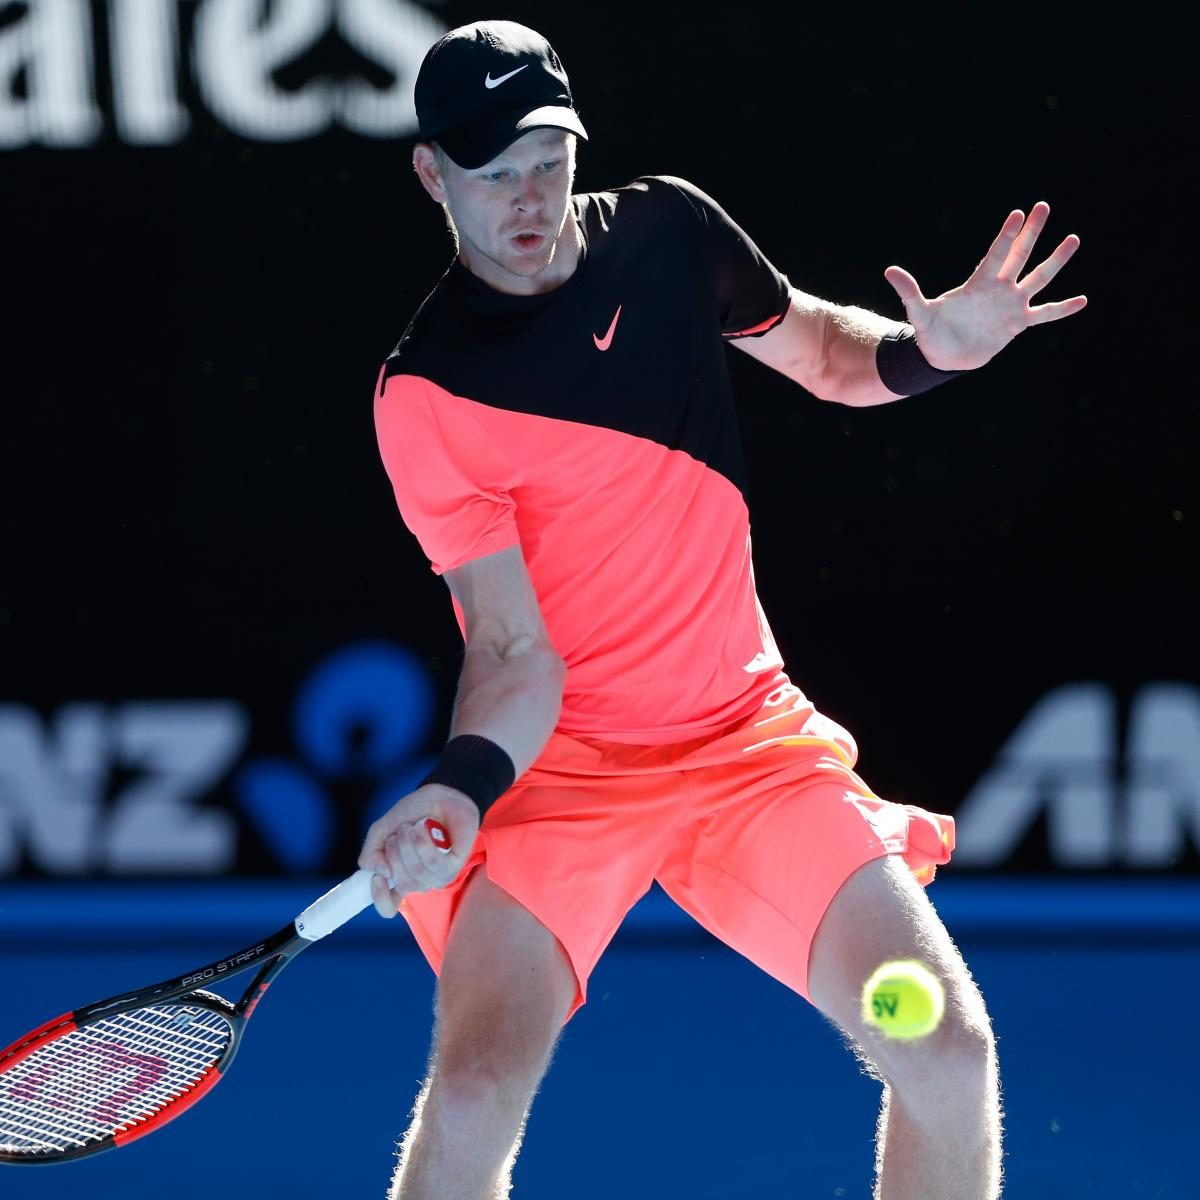 Australian Open 2018 Schedule: Tuesday Replay TV Coverage